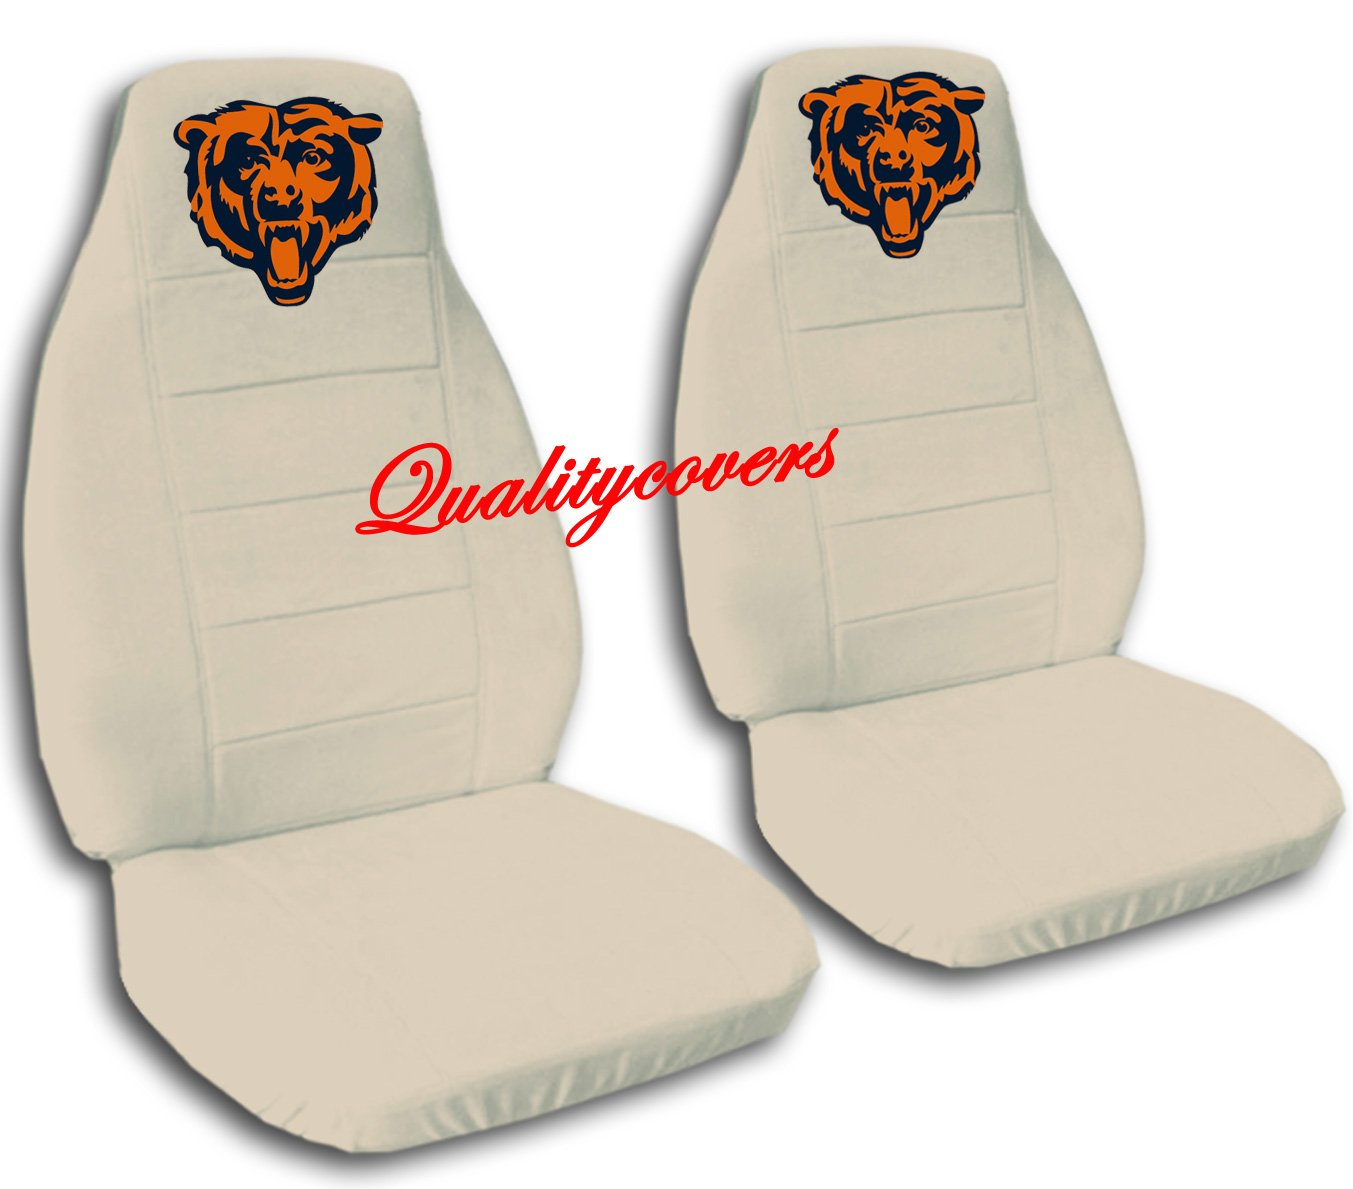 2 Sand Chicago seat covers for a 2007 to 2012 Ford Fusion. Side airbag friendly.